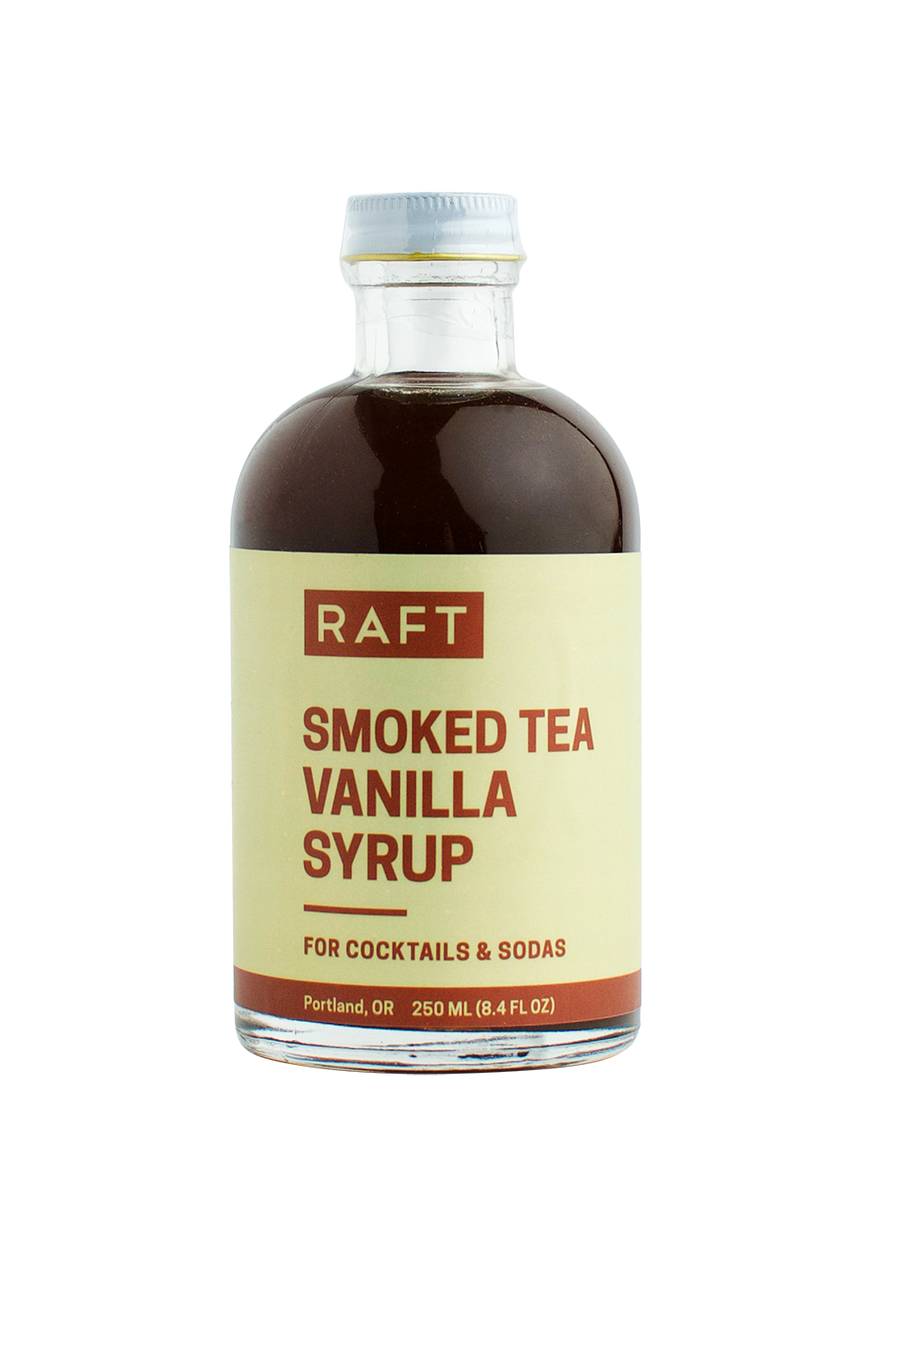 Smoked Tea Vanilla Syrup